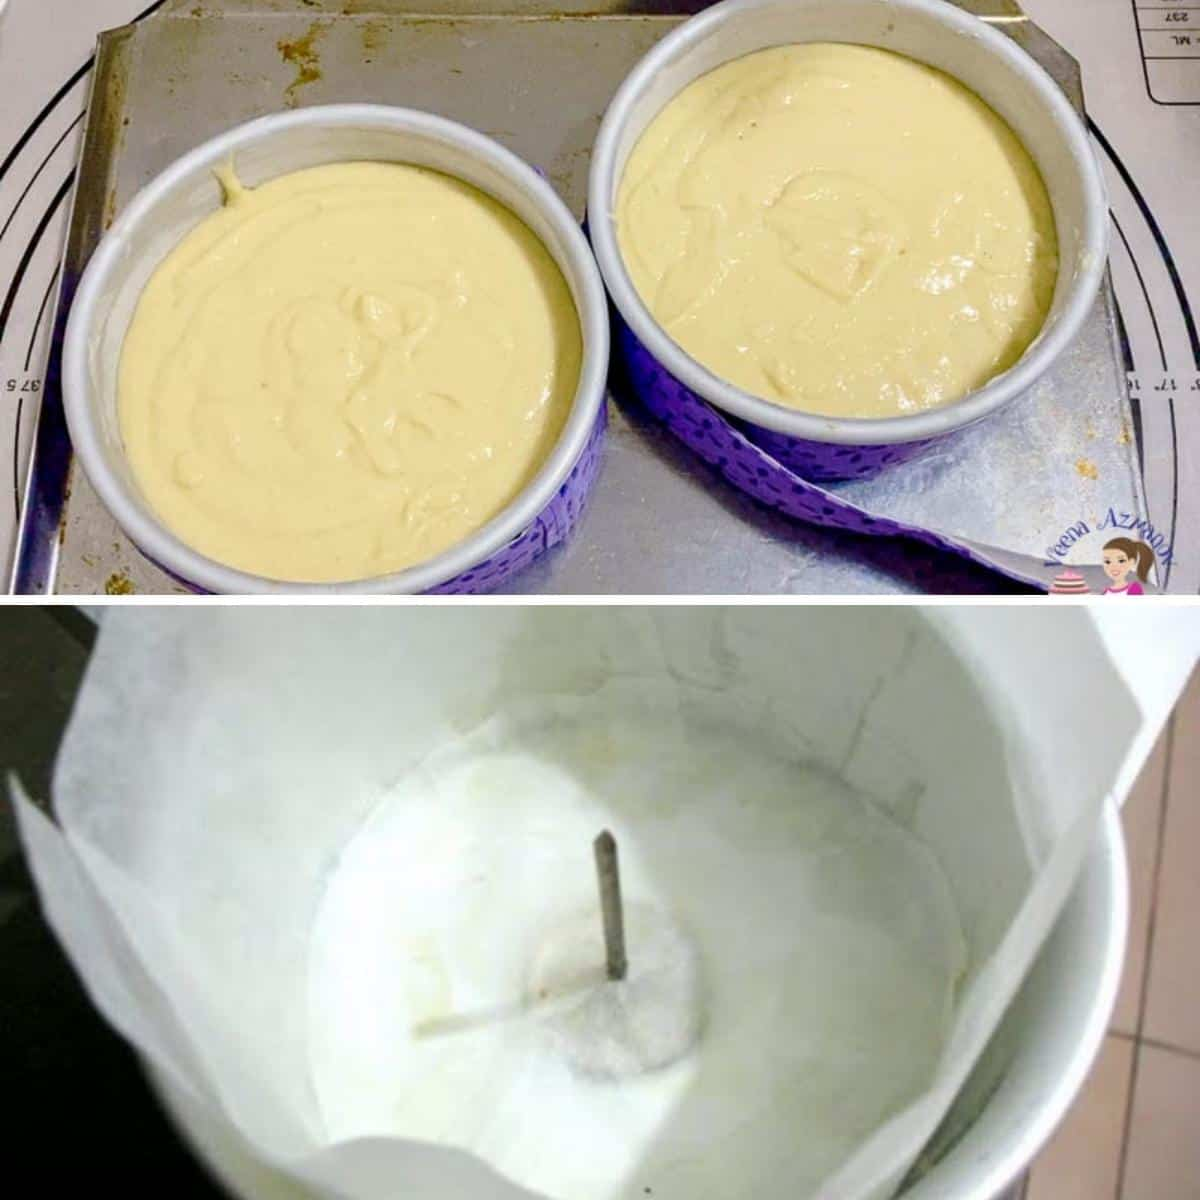 Baking tips - showing how to use baking strips and heating core for baking.